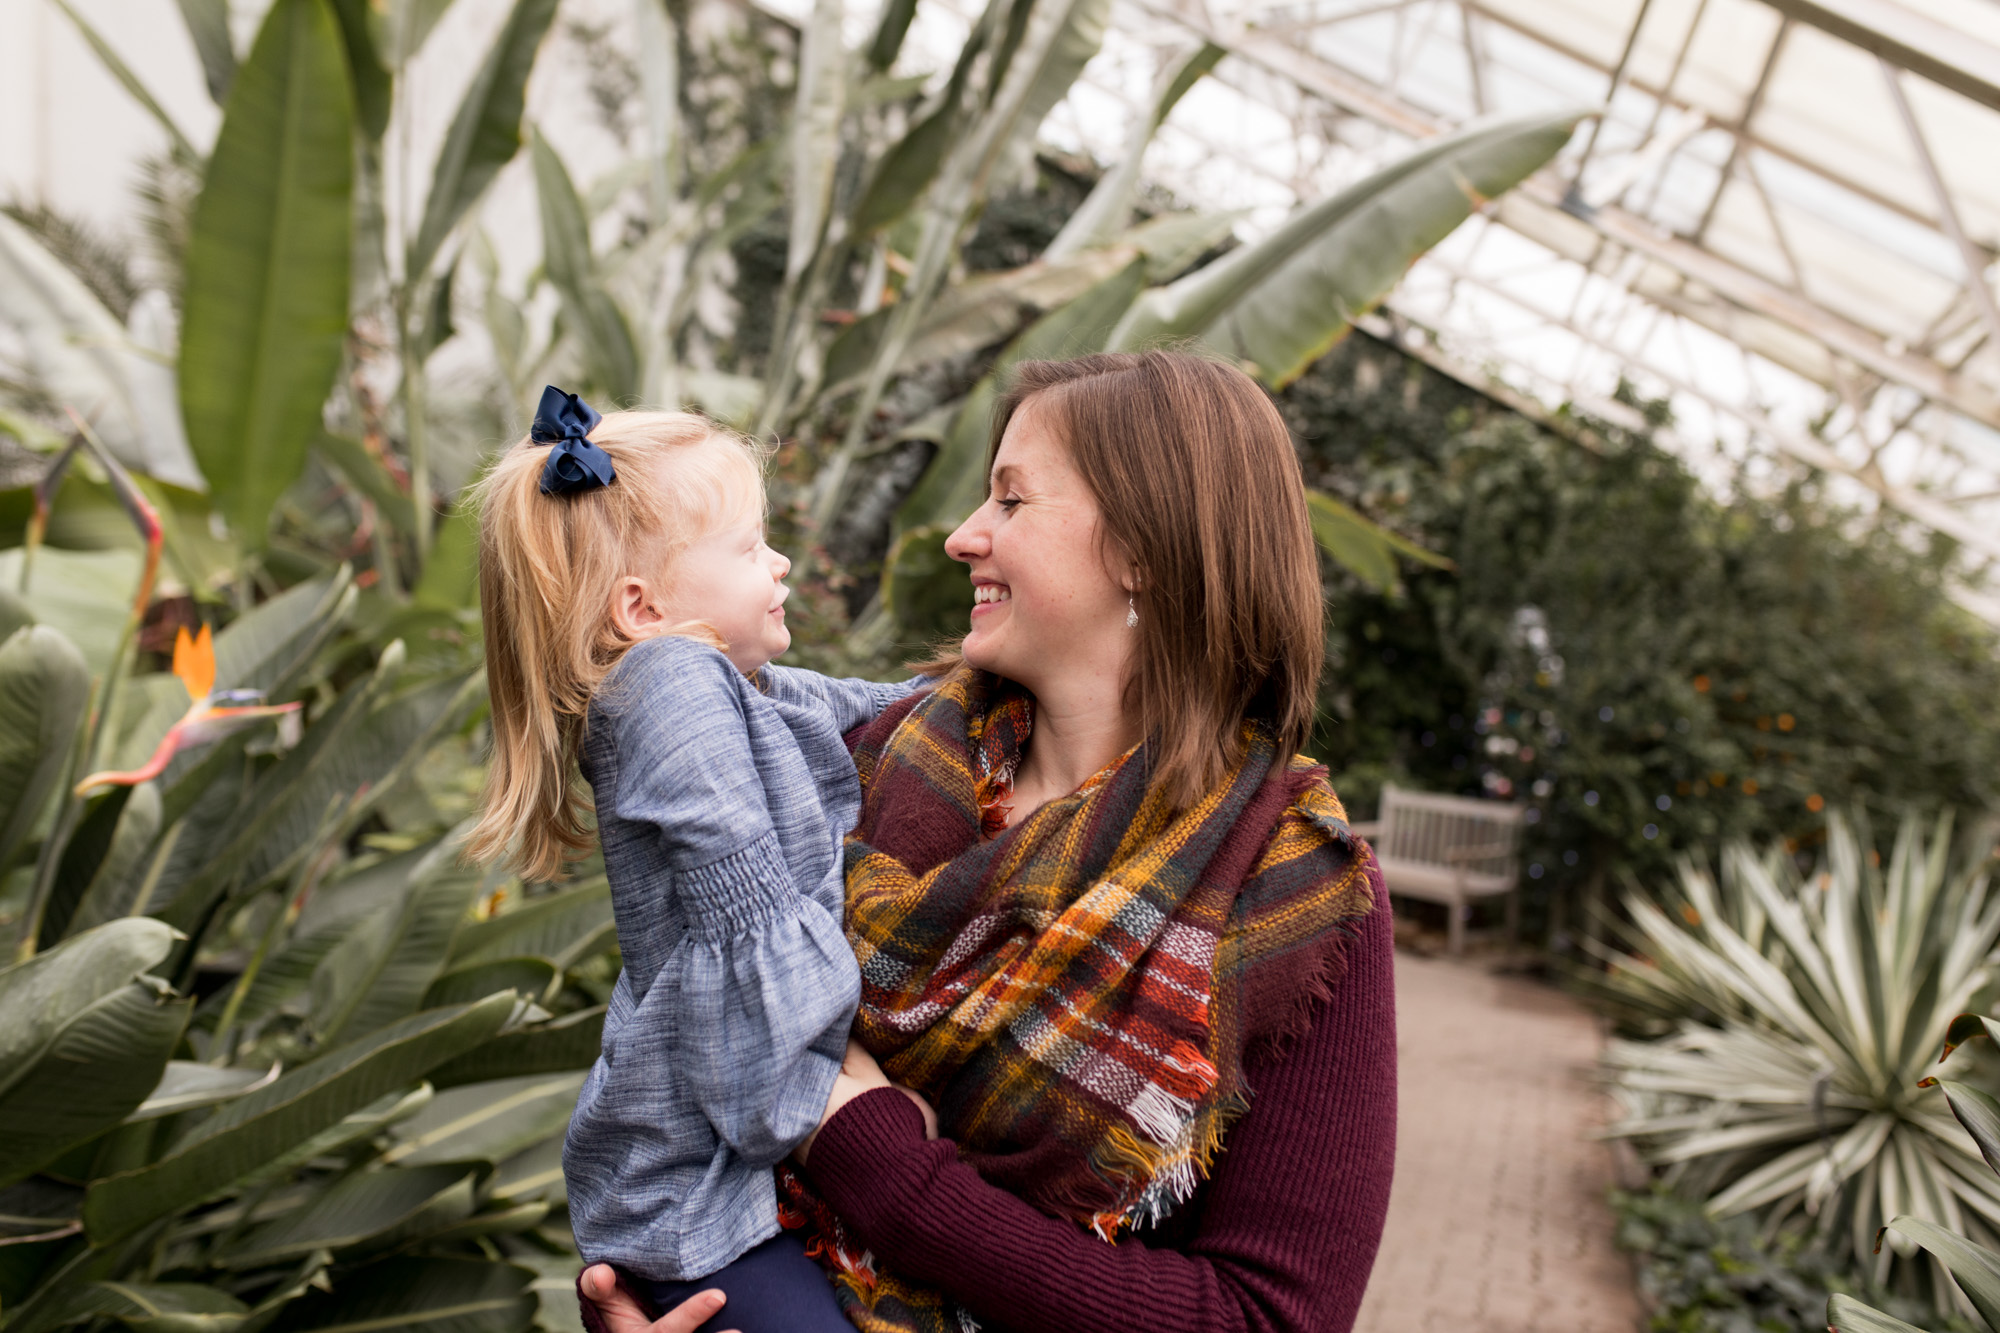 mom and daughter during family session at Foellinger-Freimann Botanical Conservatory in Fort Wayne Indiana